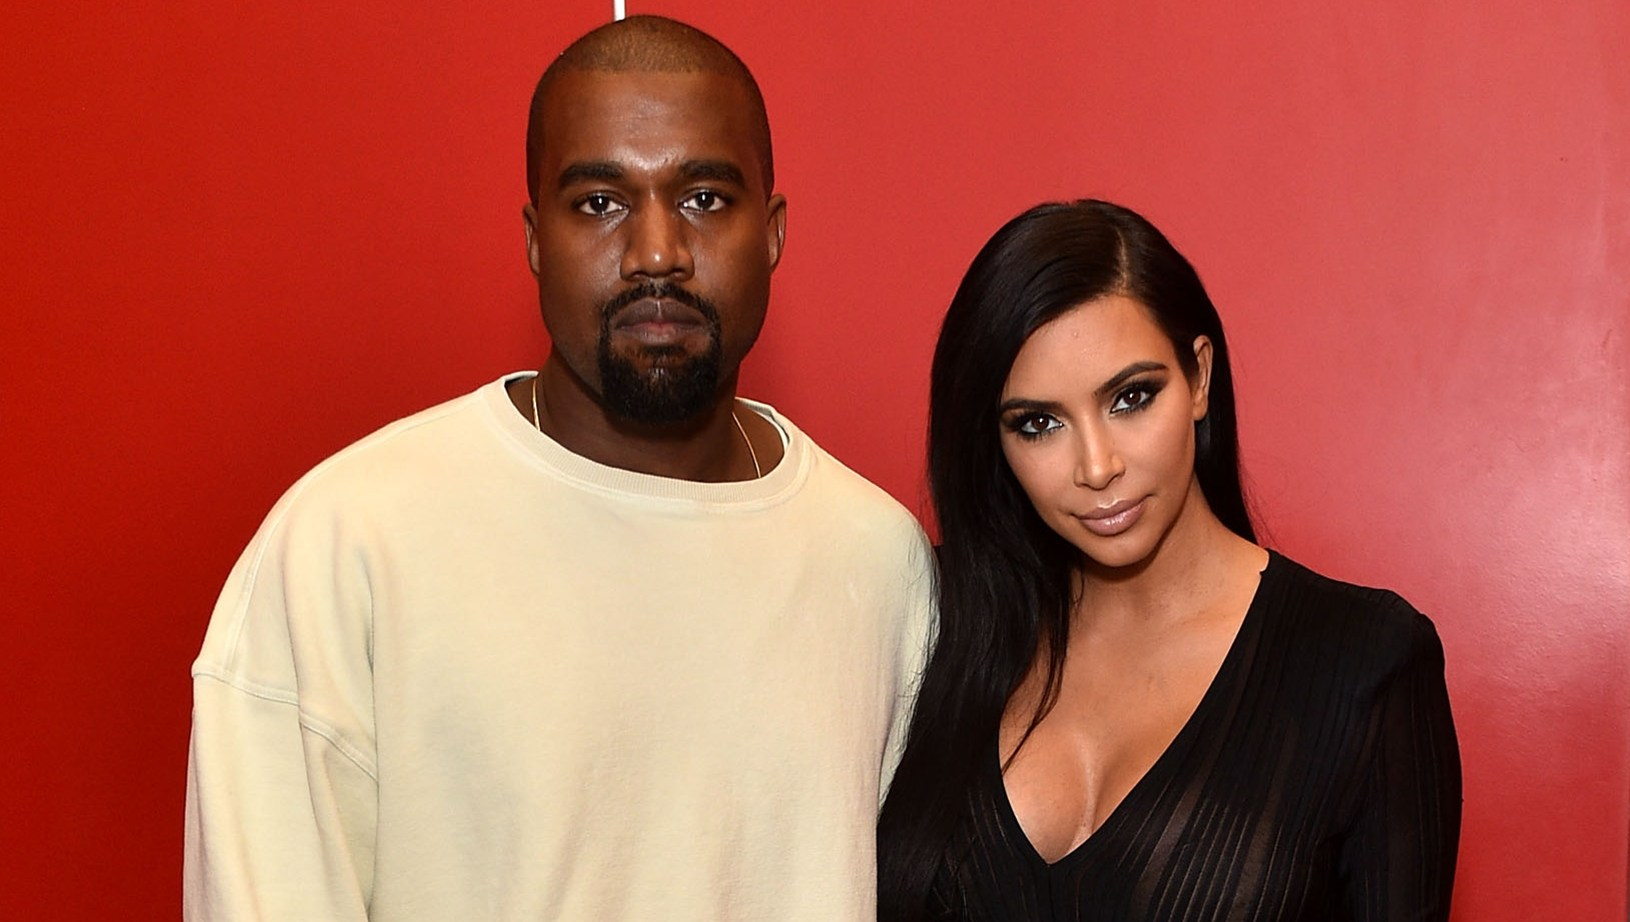 Kayne West and Kim Kardashian